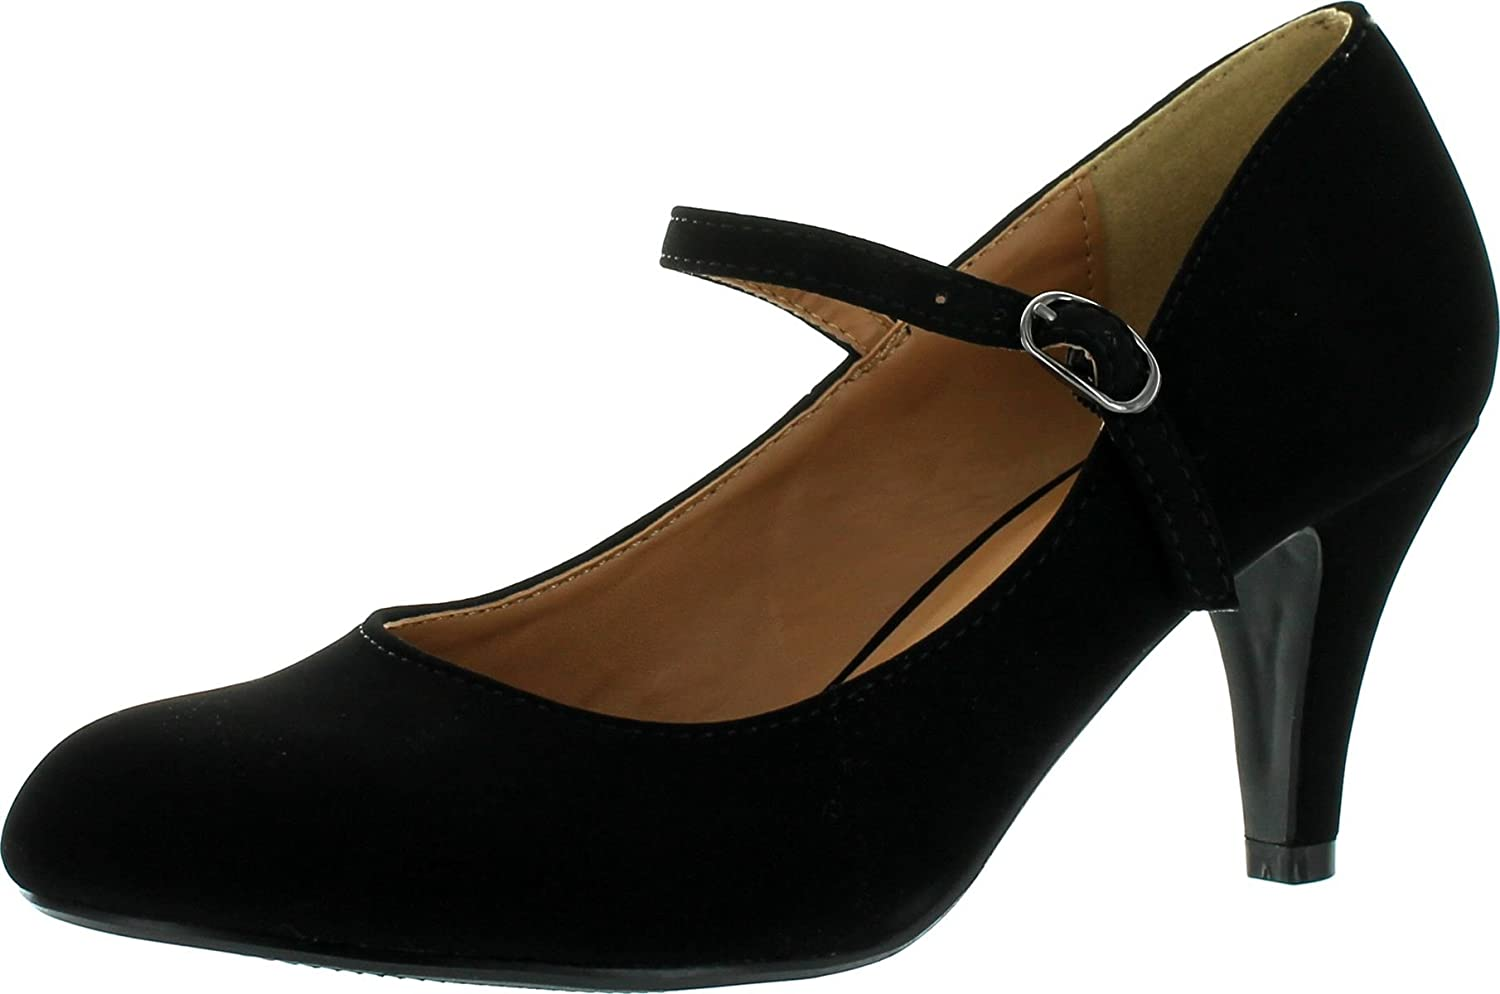 City Classified Womens Kaylee-H Pumps shoes